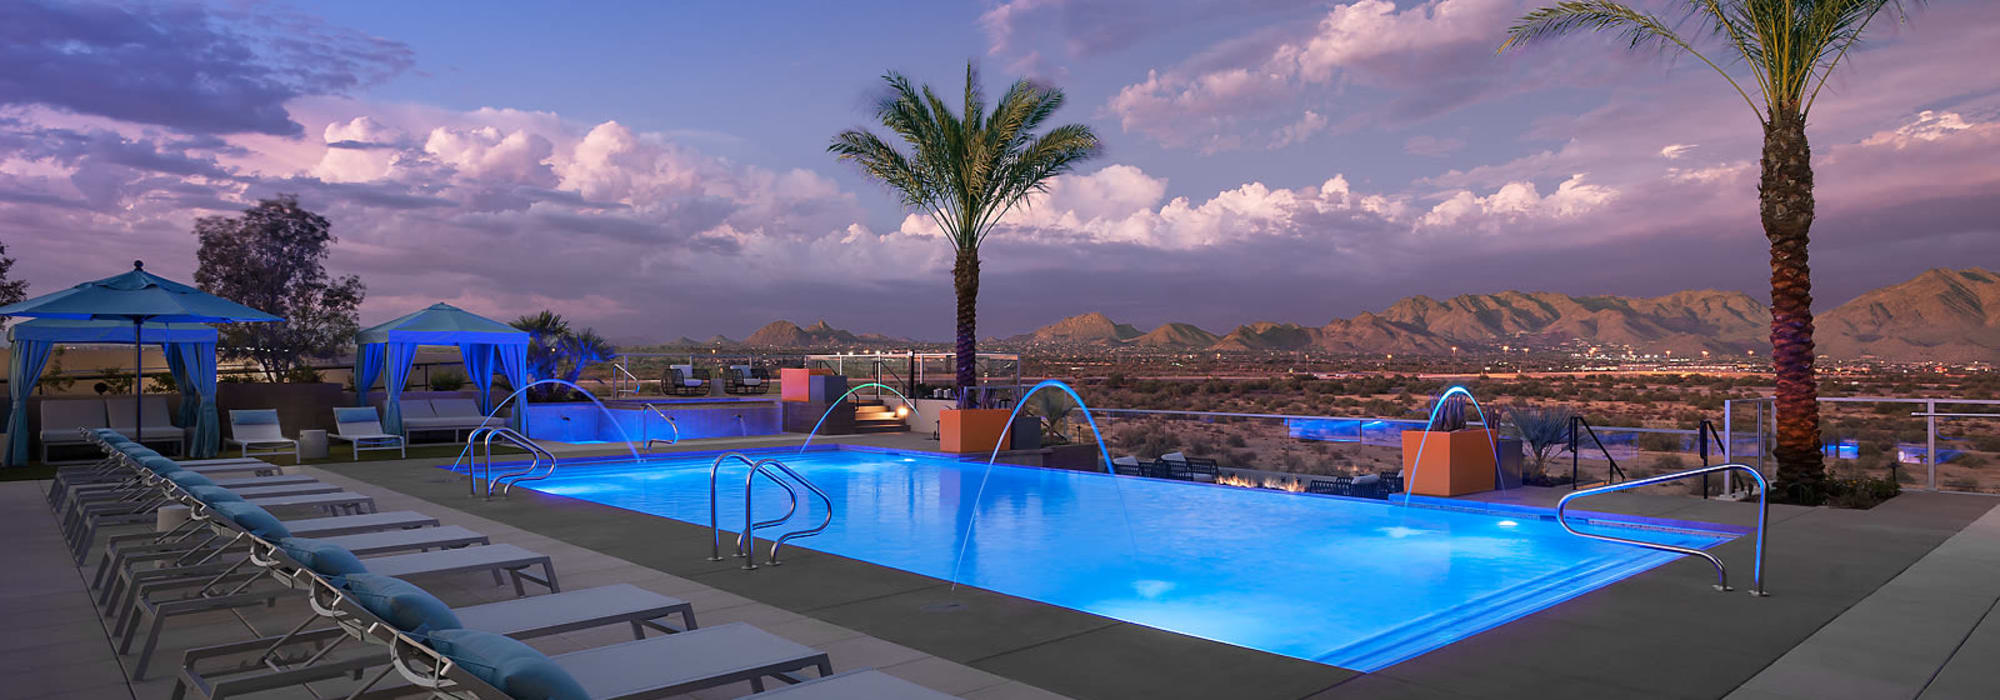 Pool at dusk at The Halsten at Chauncey Lane in Scottsdale, Arizona